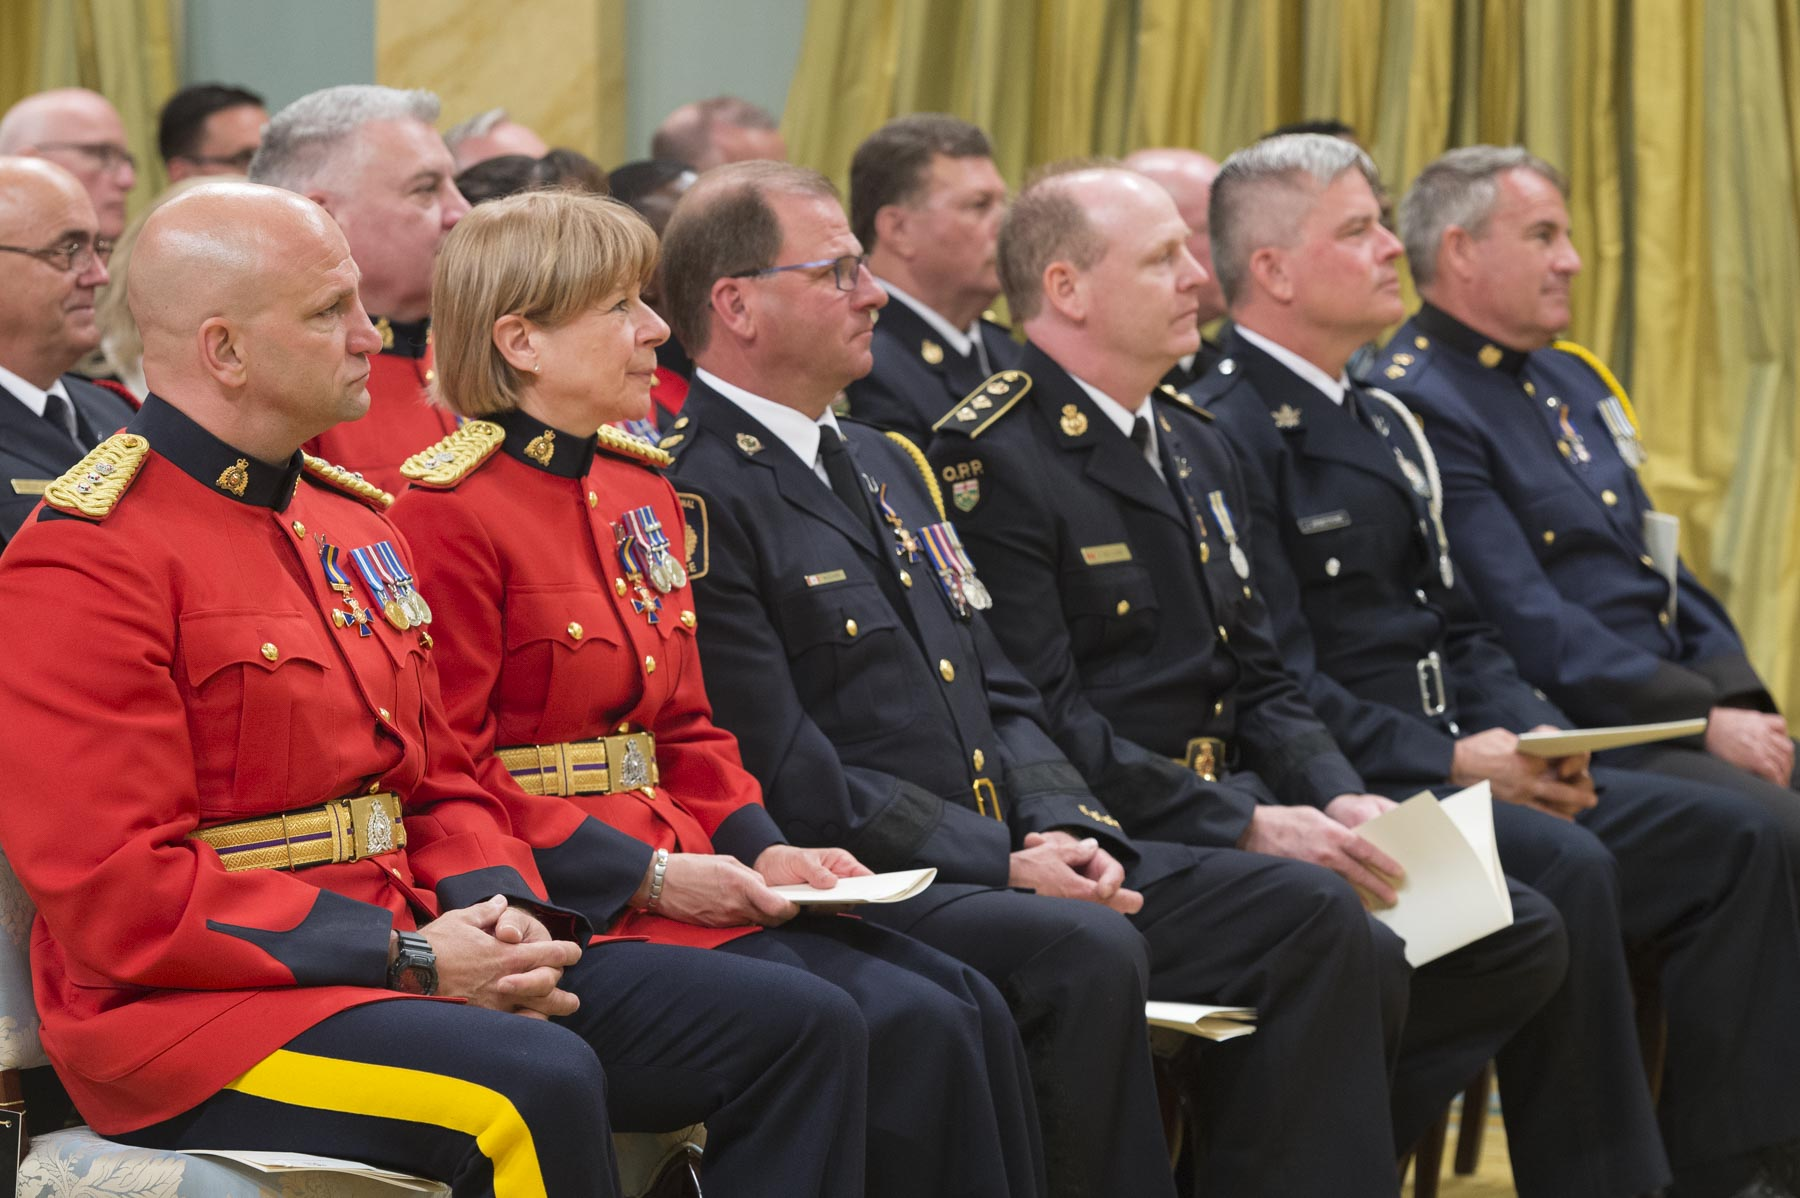 The Order of Merit of the Police Forces was created in 2000, to recognize conspicuous merit and exceptional service by members and employees of Canadian police forces whose contributions extend beyond protection of the community. Three levels of membership with post-nominal letters reflect long-term, outstanding service: Commander (C.O.M.), Officer (O.O.M.) and Member (M.O.M.).